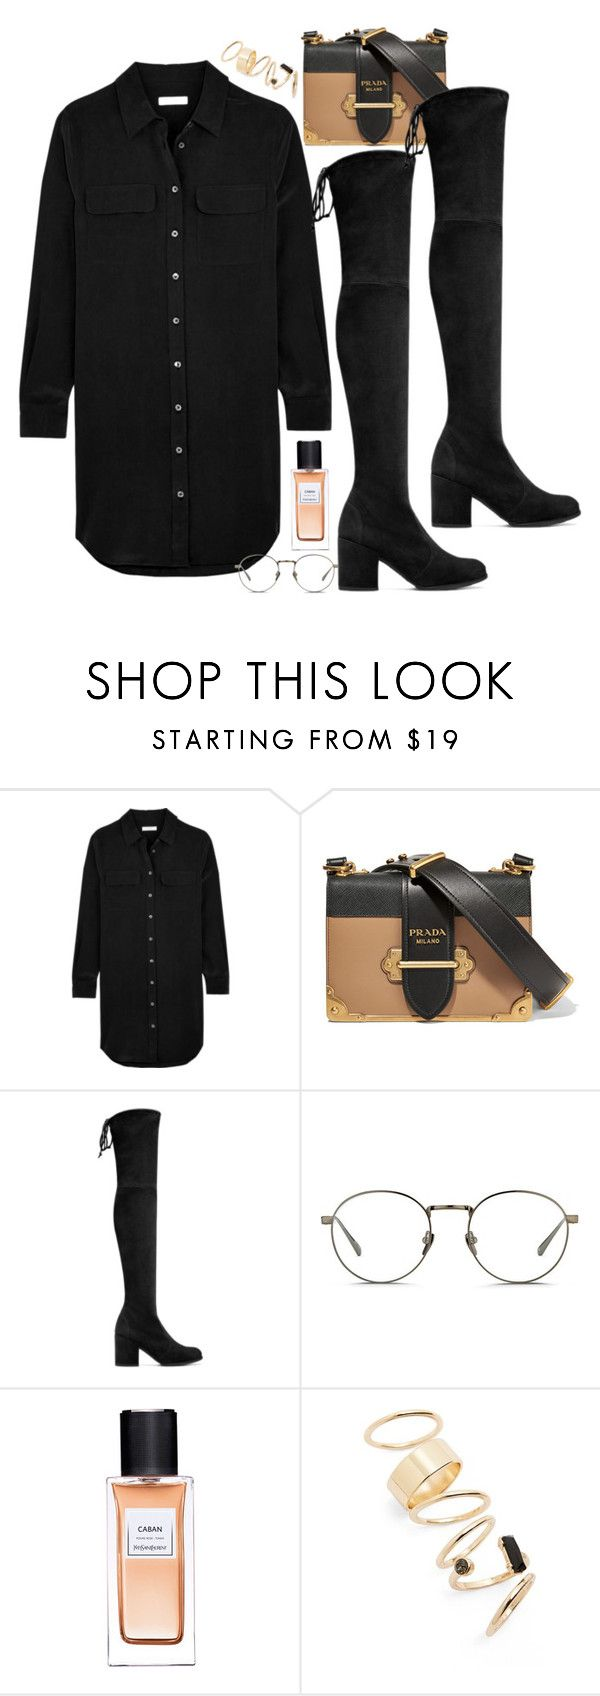 """Untitled #1800"" by samikayy76 on Polyvore featuring Equipment, Prada, Stuart Weitzman, Linda Farrow, Yves Saint Laurent and BP."